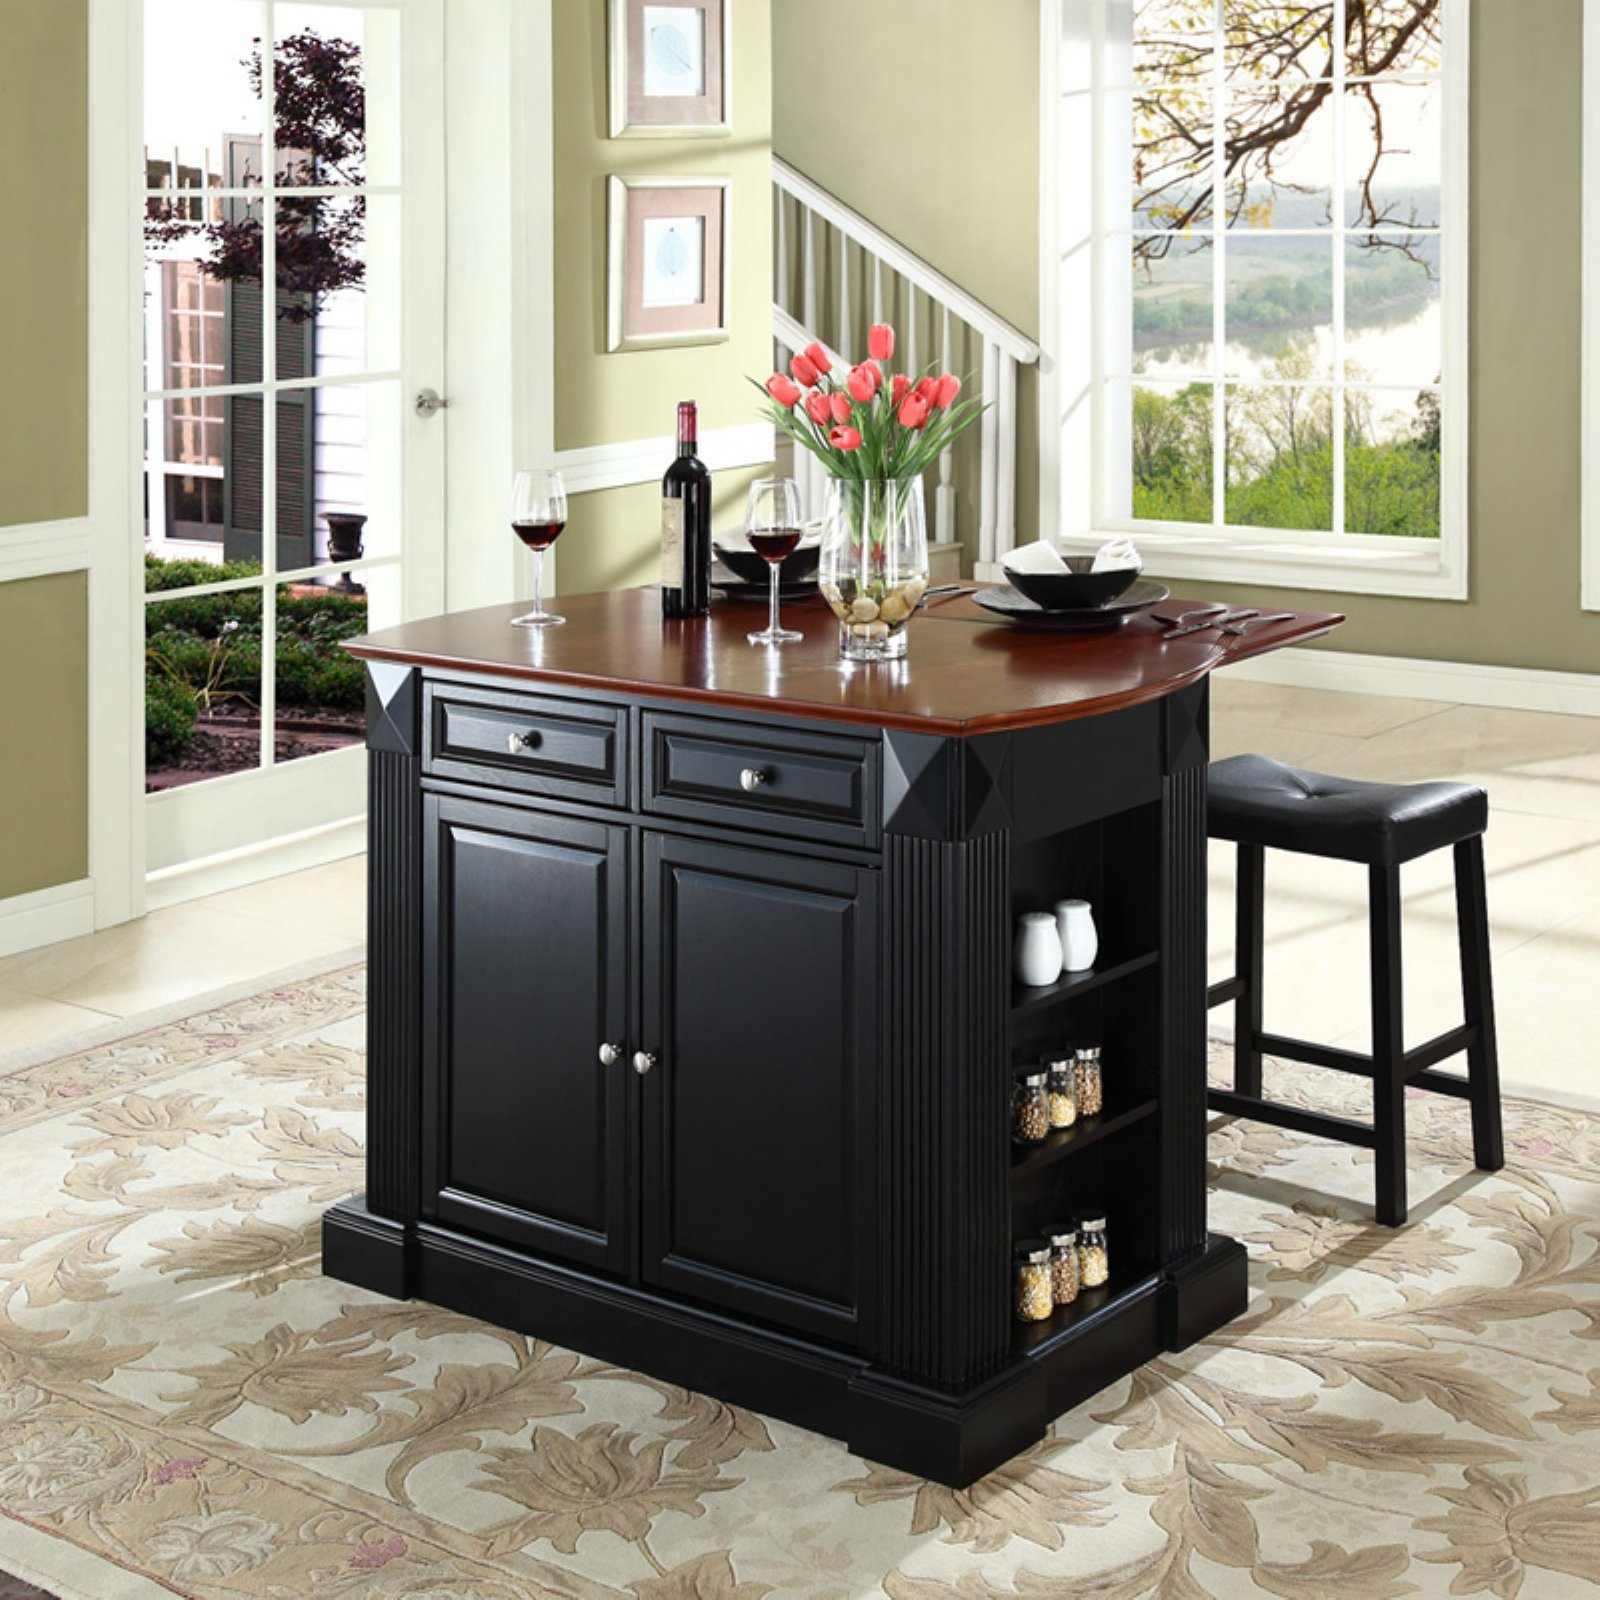 "Crosley Furniture Drop Leaf Breakfast Bar Top Kitchen Island with 24"" Upholstered Saddle Stools"